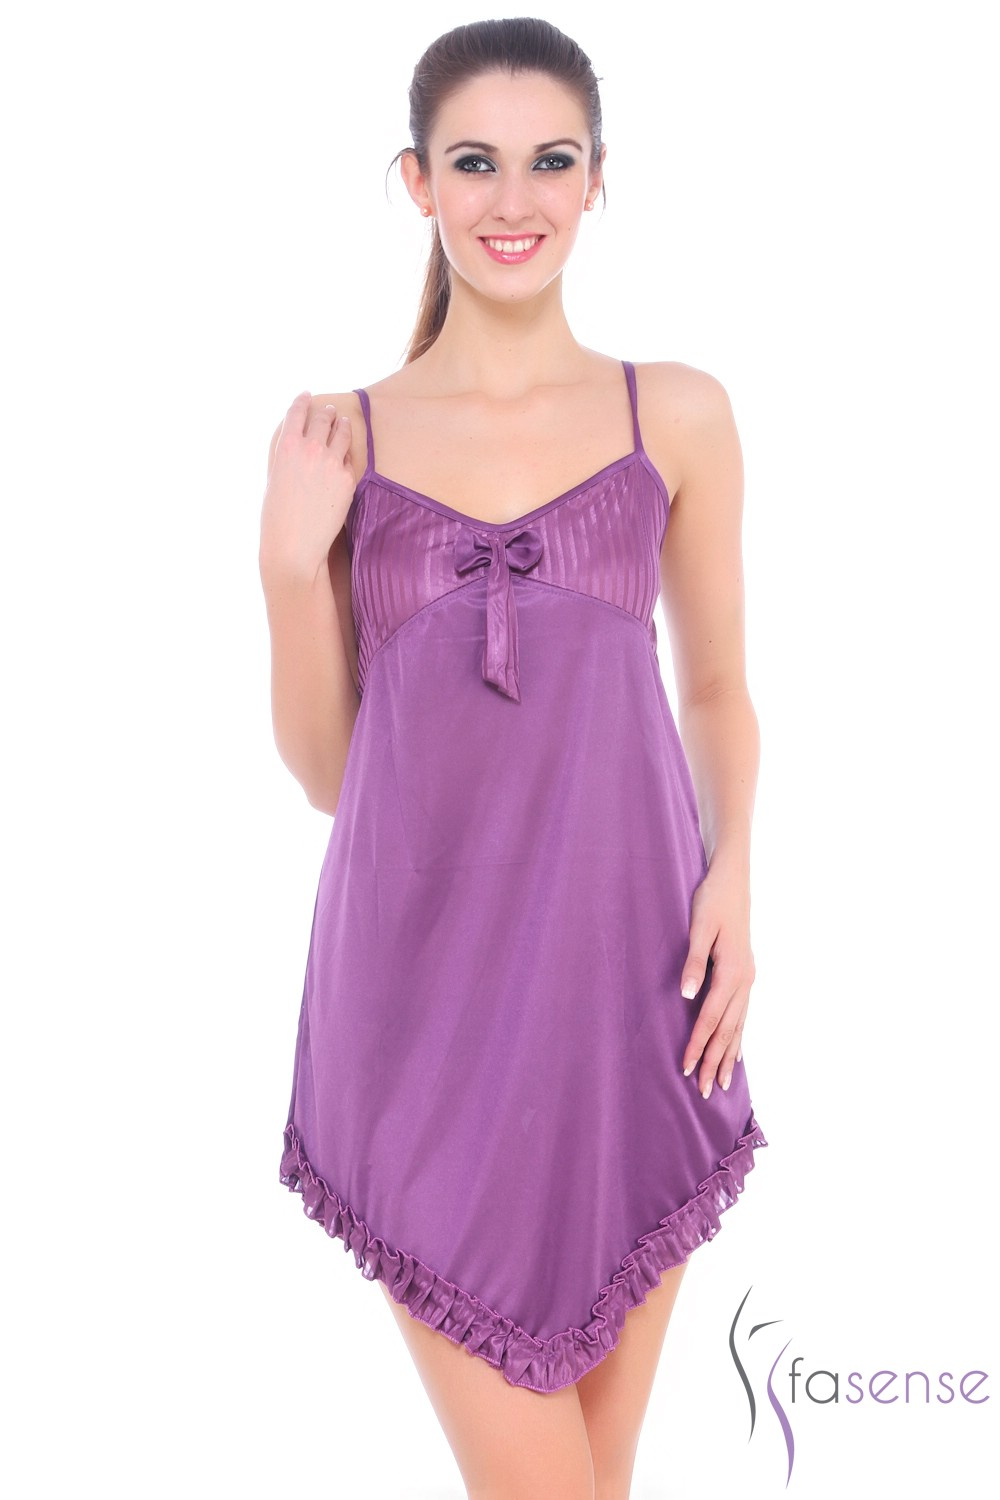 Ladies nightwear online shopping